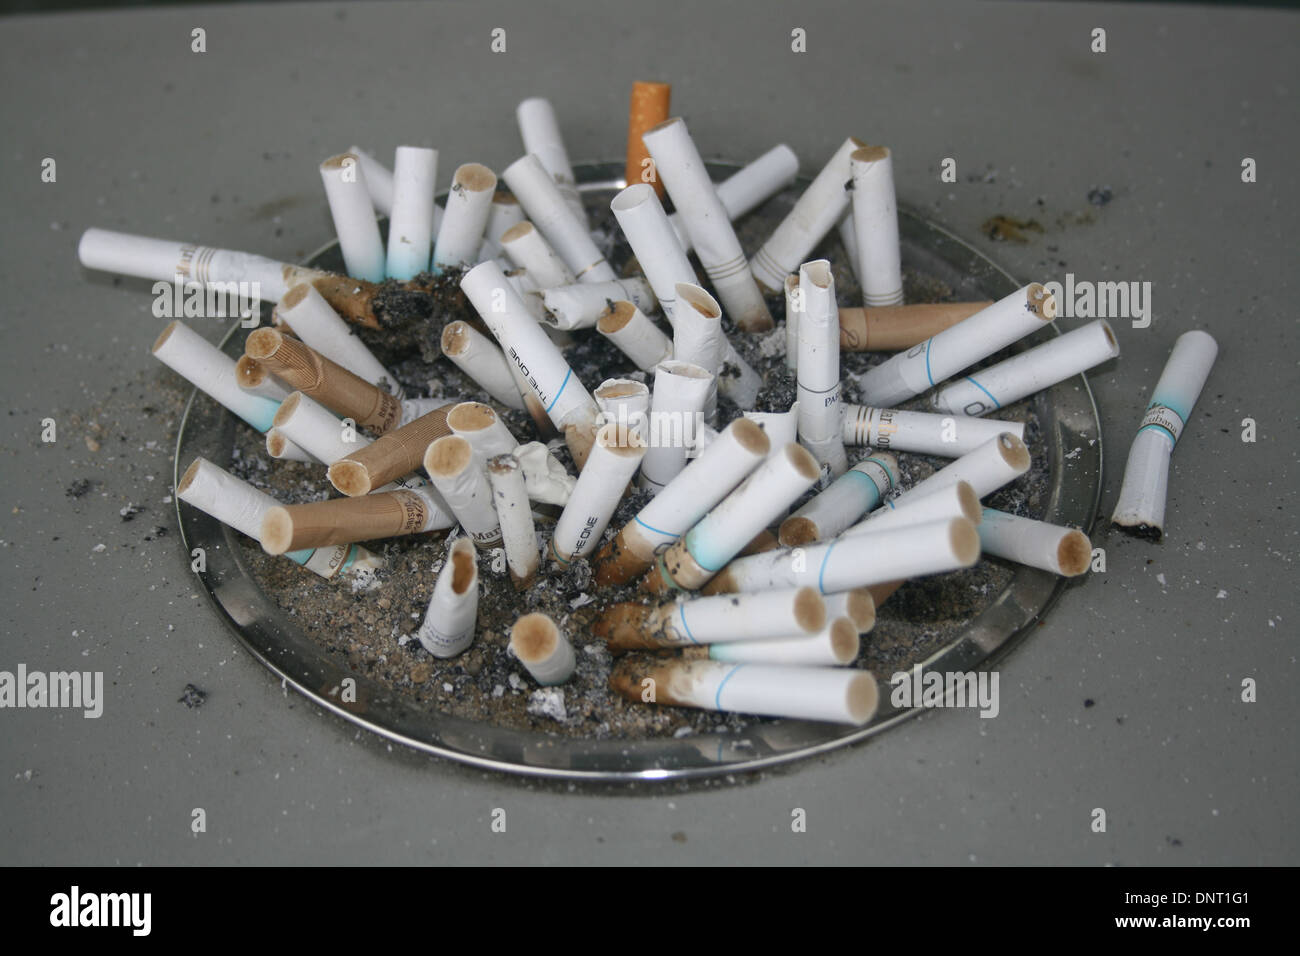 Cigarette butts outside Radisson Hotel, Los Angeles, USA - Stock Image